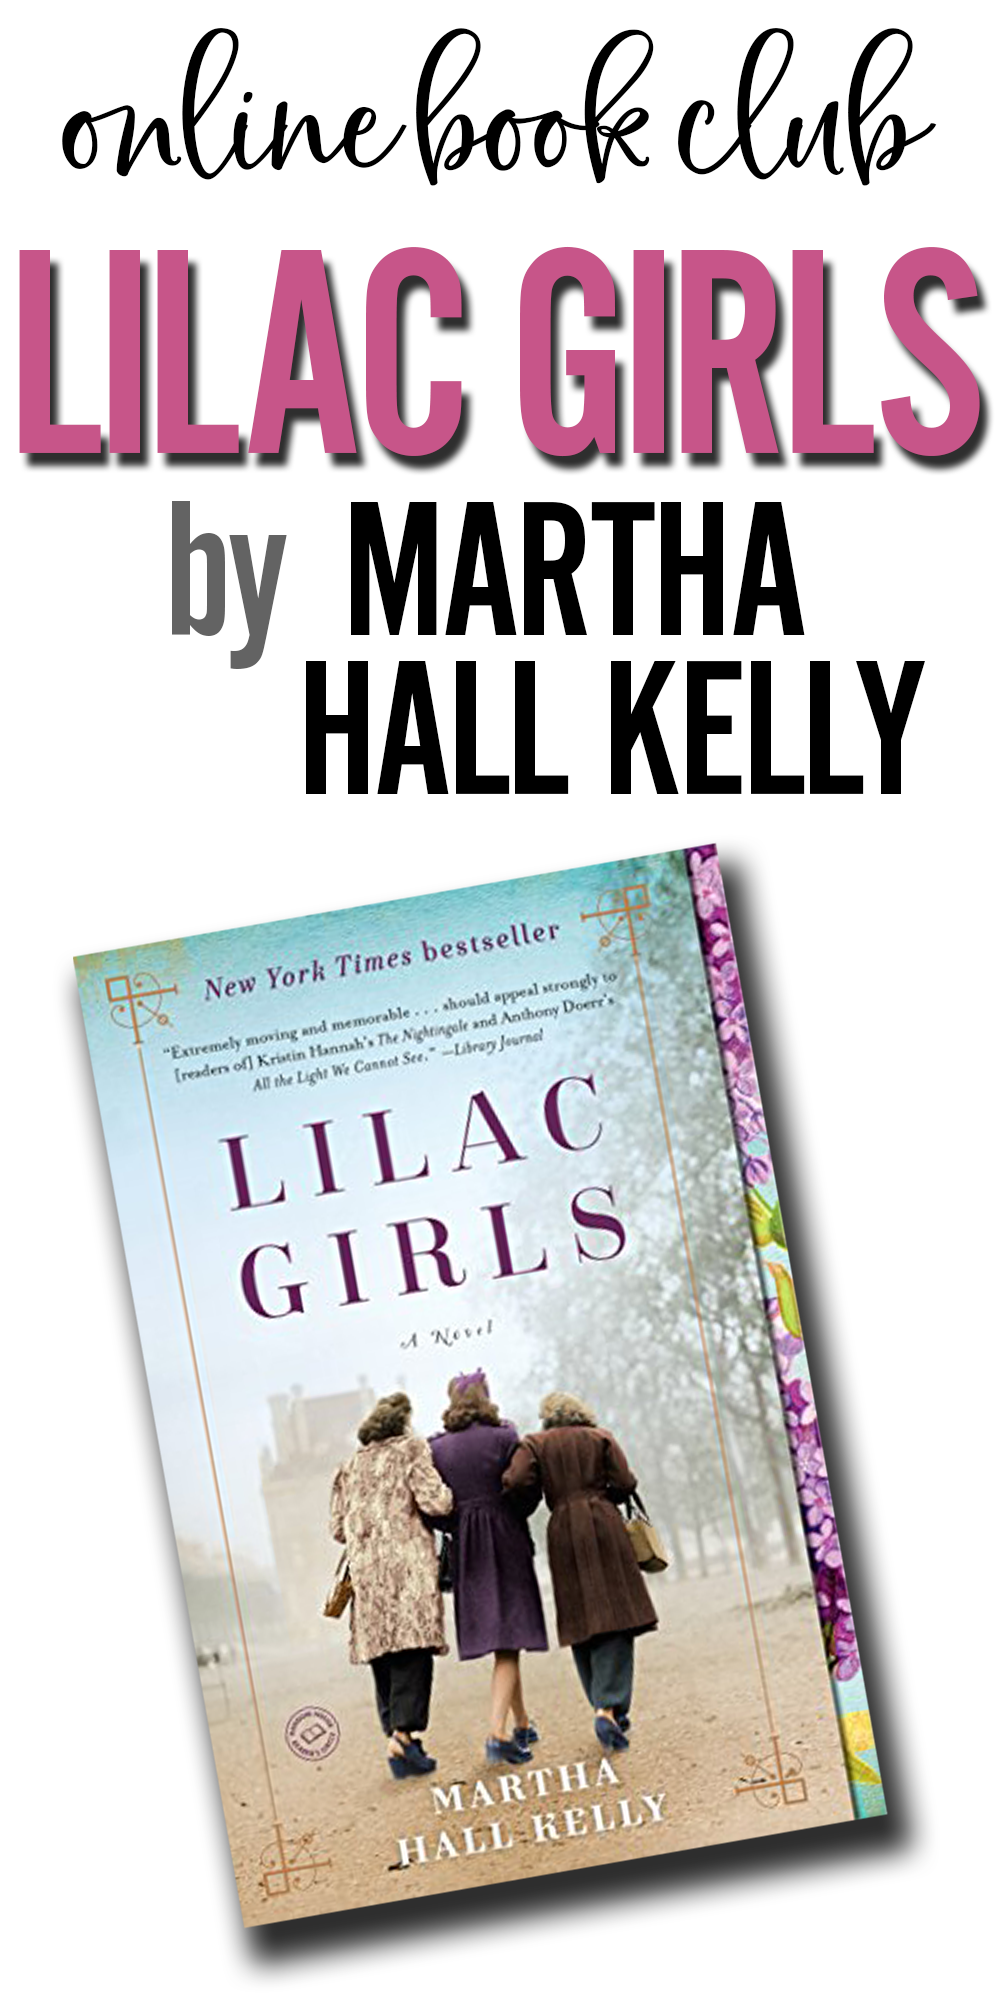 Inspired by Victoria: Lilac Girls by Martha Hall Kelly